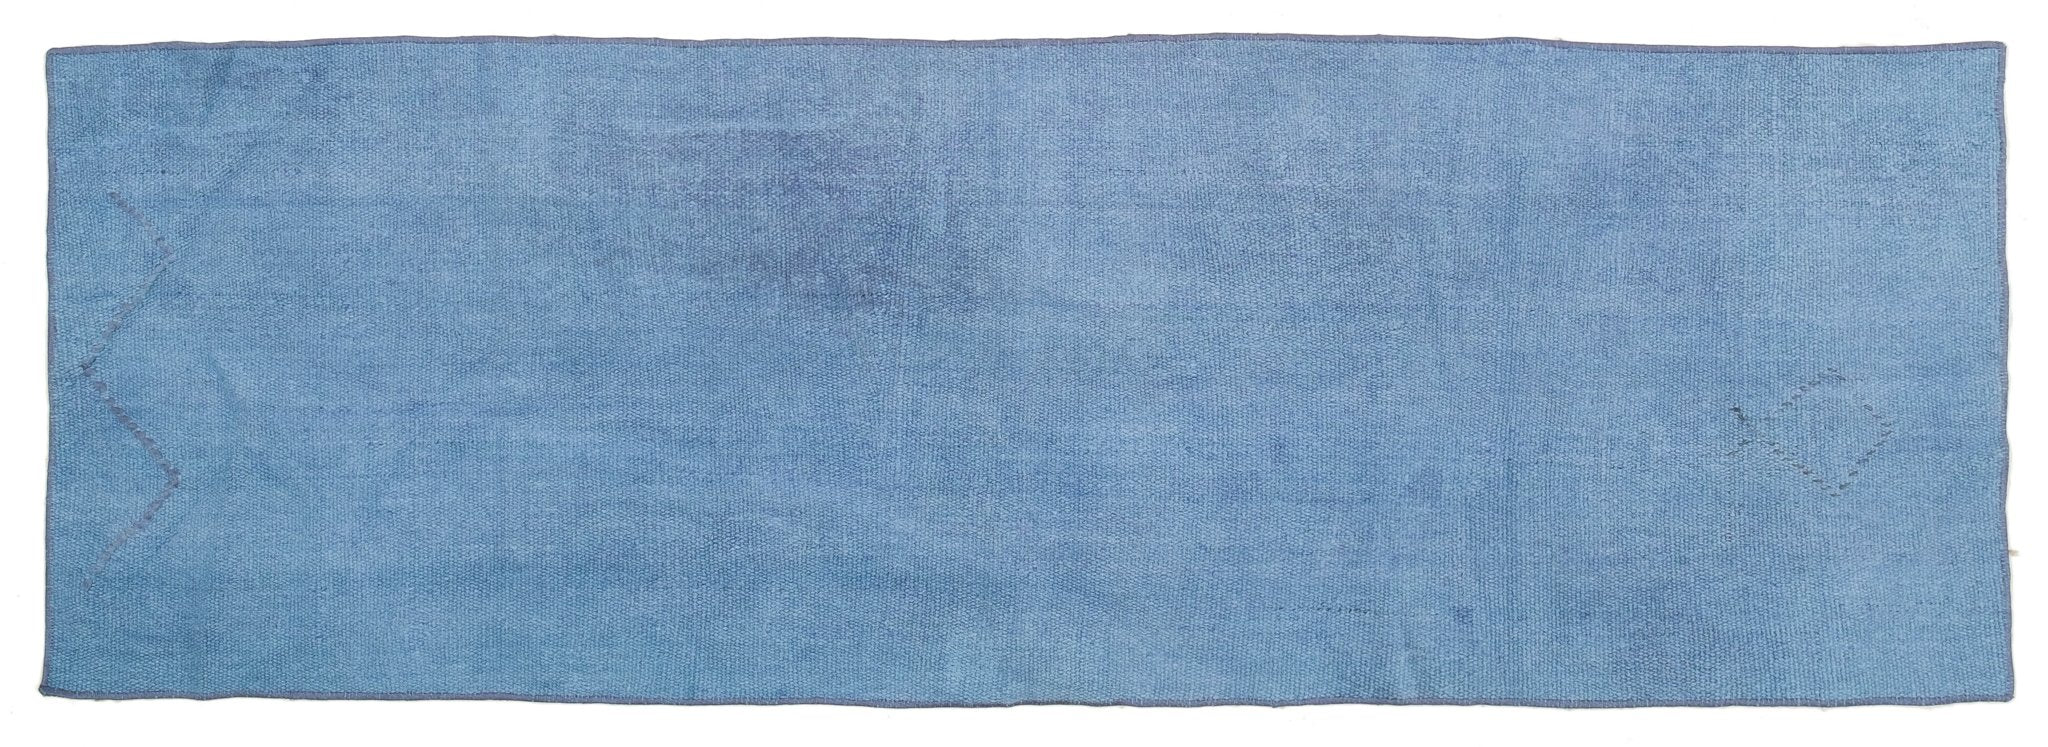 Vintage Overdyed Runner Rug Shavarsh